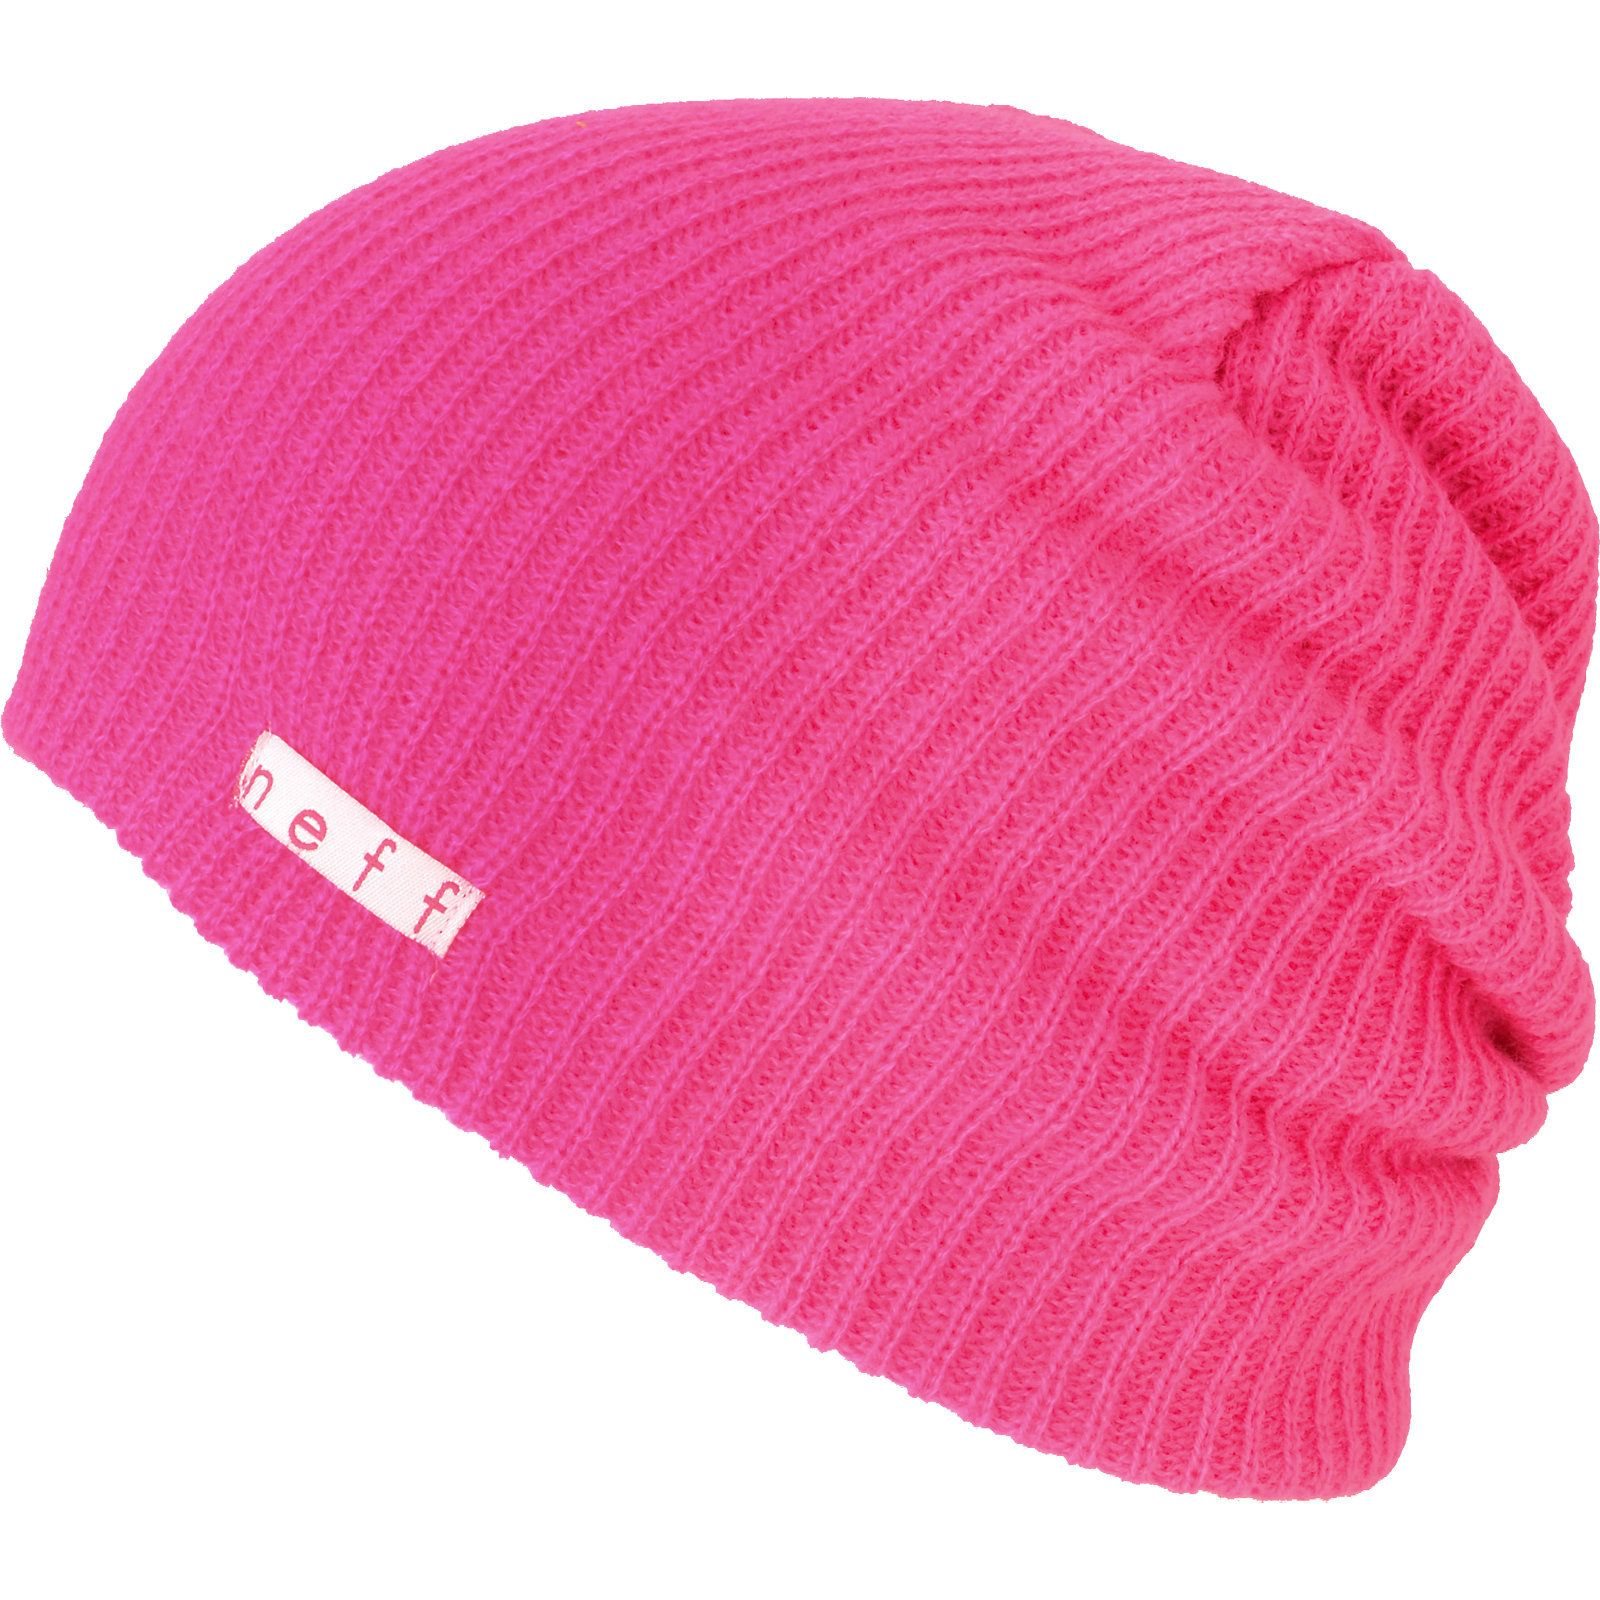 3530a69f216  17.95 Neff Daily Pink Beanie from Zumiez. Visit Zumiez.com for more cute  beanies and clothing for both guys and girls